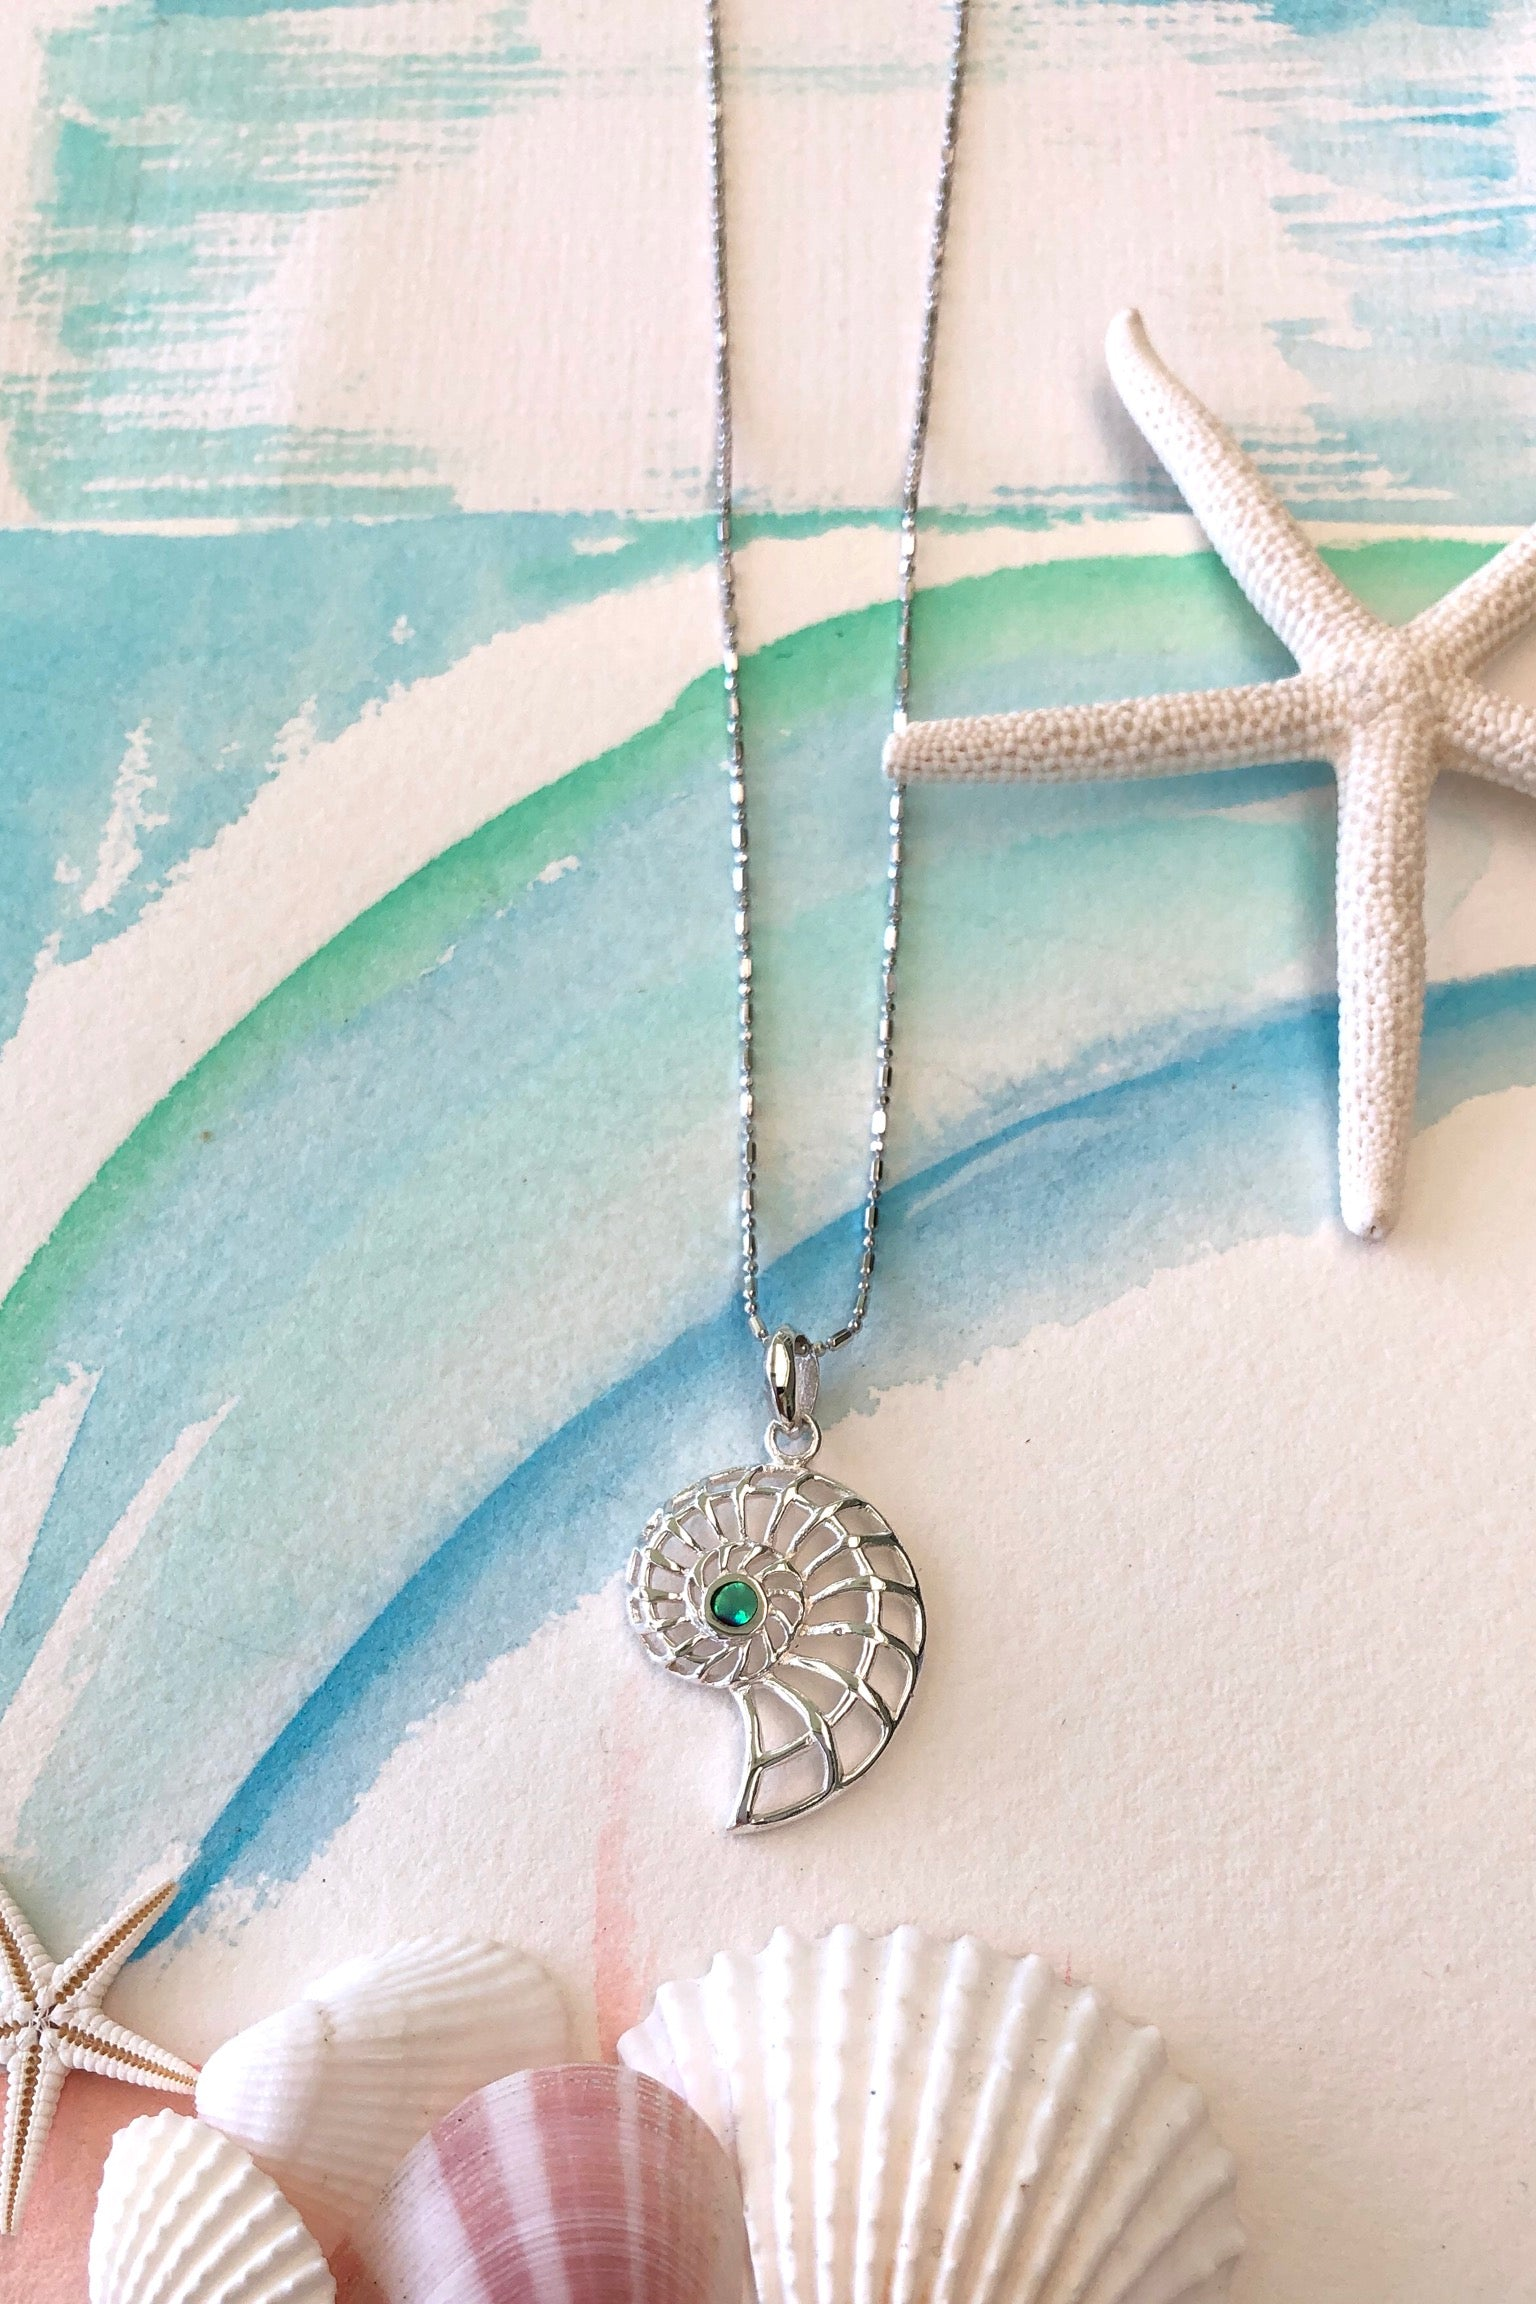 A beautiful nautical necklace with a Paua shell centre, bringing lovely warmth and gentle vibrations